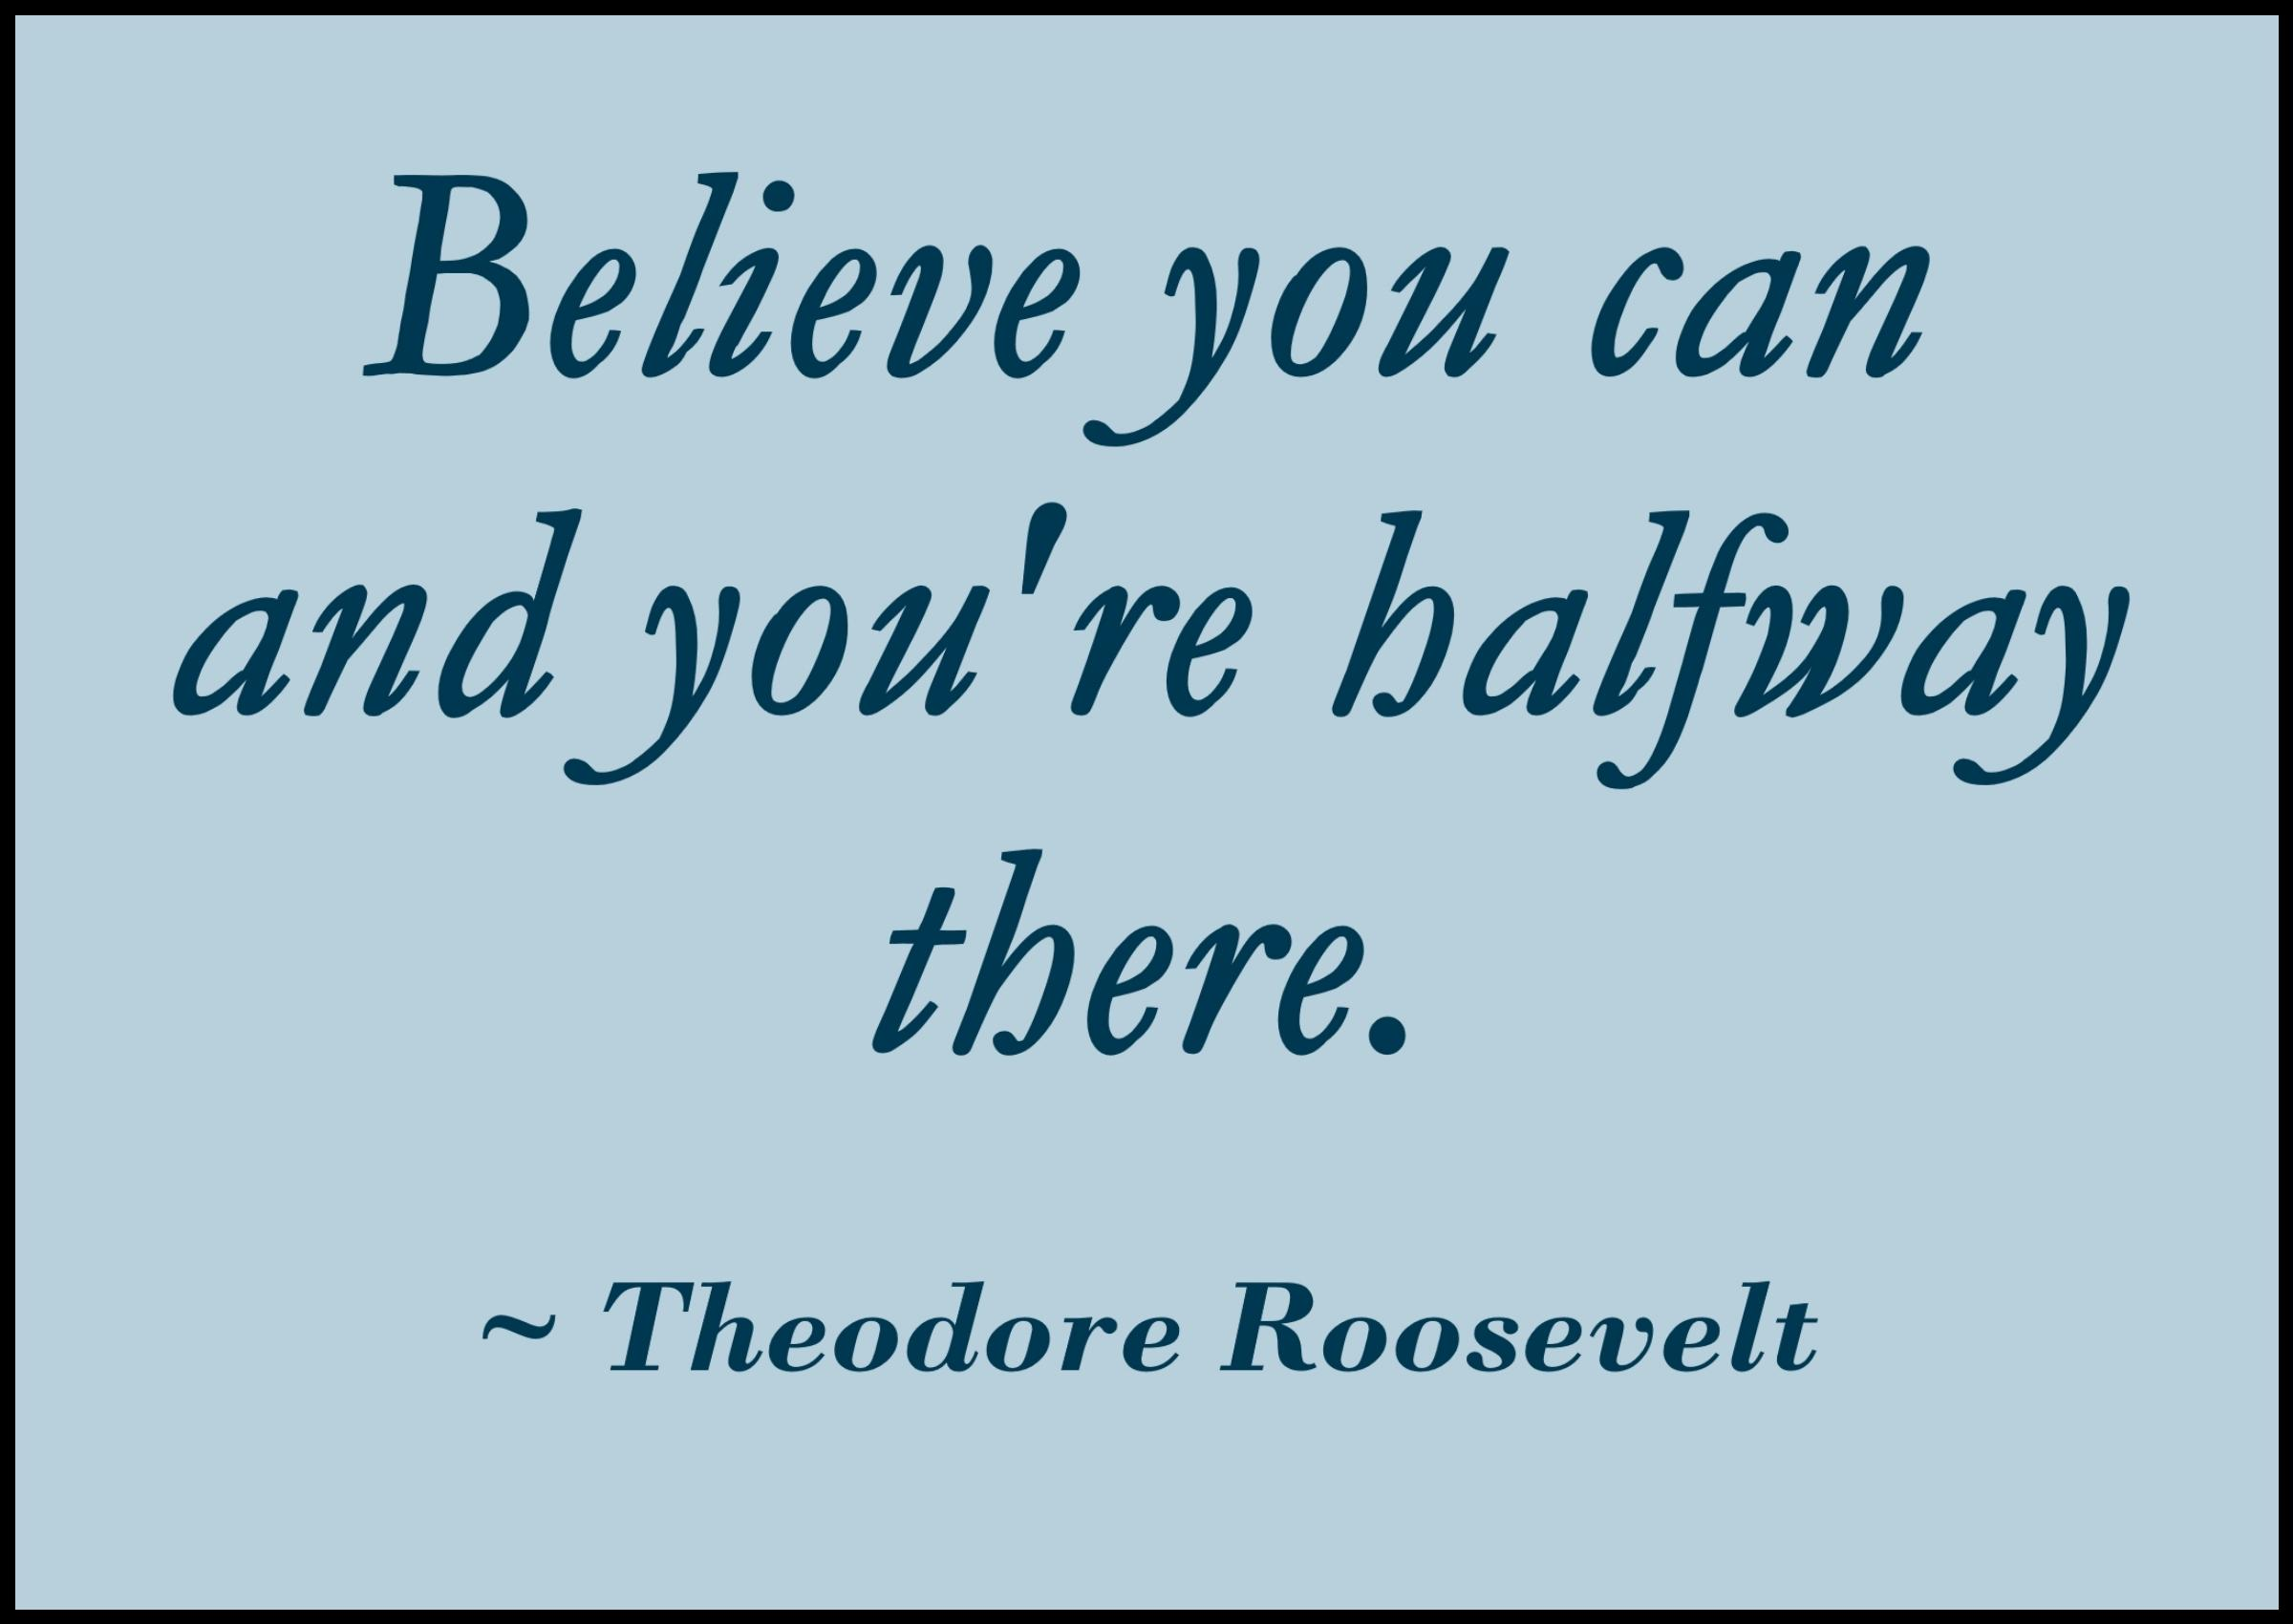 [Image] Believe you can